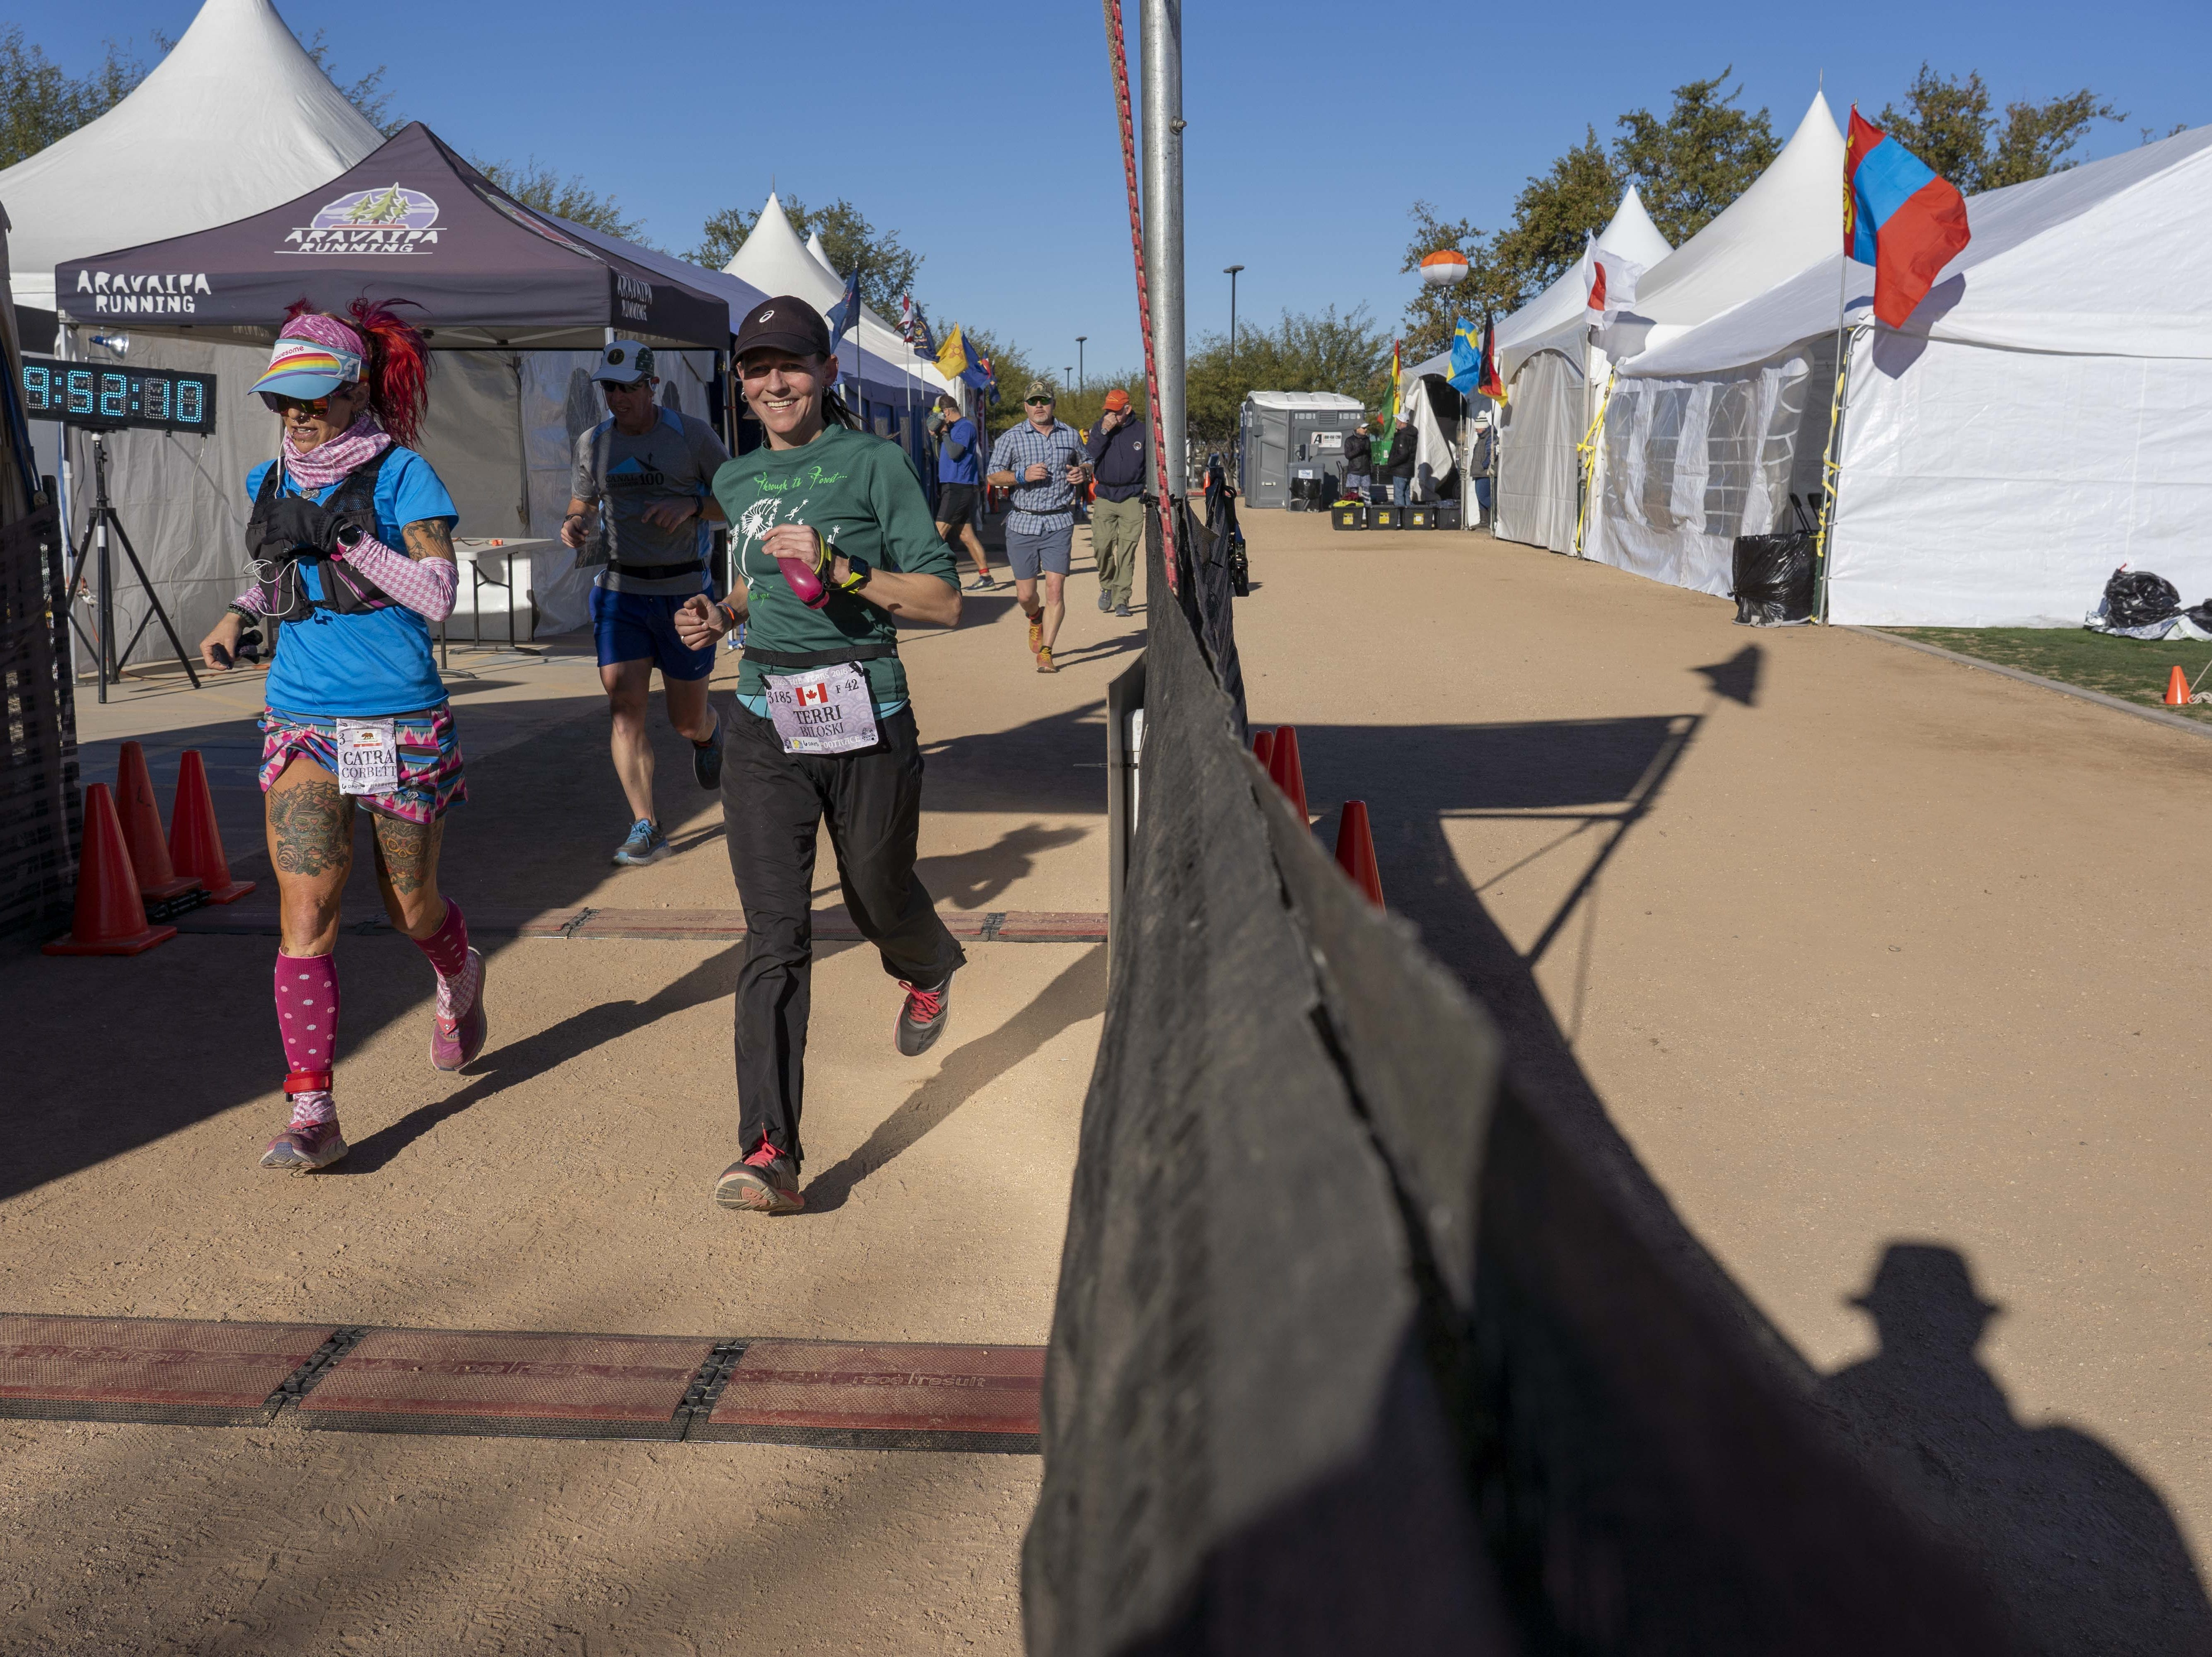 Runners get ready for Across the Years, a 6-day race that attracts endurance runners to Camelback Ranch in Glendale, AZ.